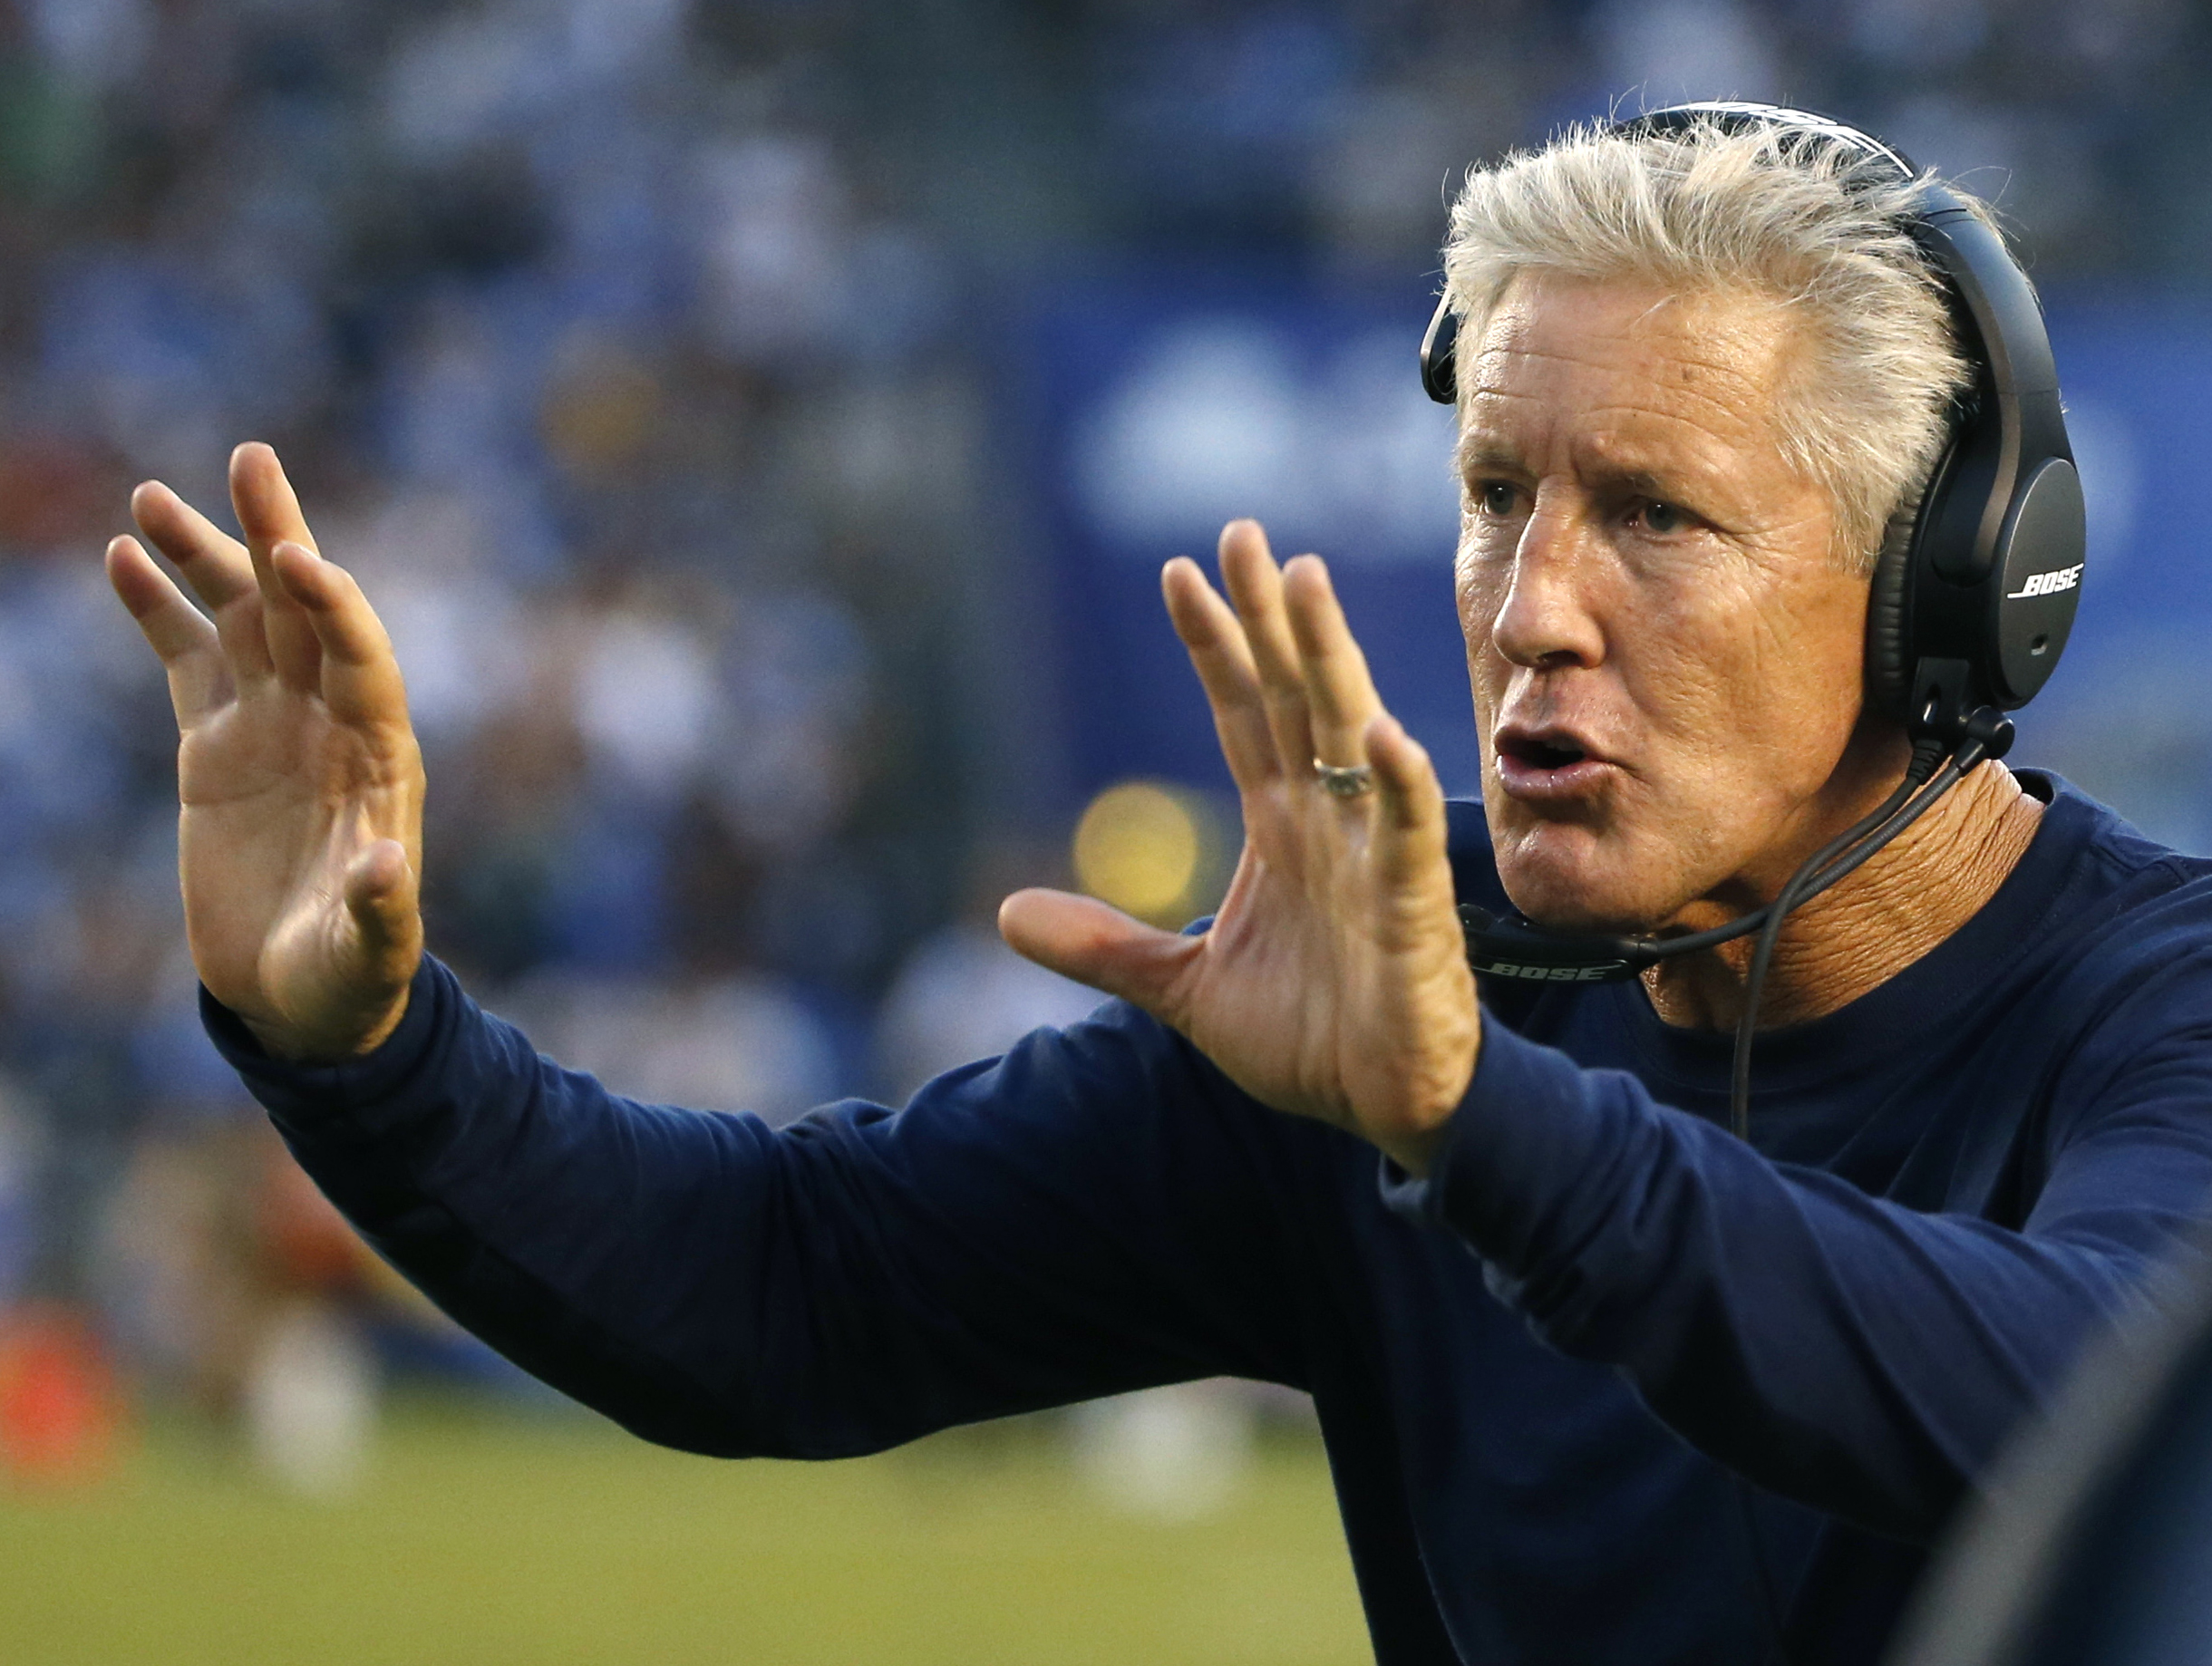 FILE - In this Aug. 29, 2015, file photo, Seattle Seahawks head coach Pete Carroll yells to his team during the second half of a preseason NFL football game against the San Diego Chargers in San Diego. As part of the program he has constructed in Seattle,